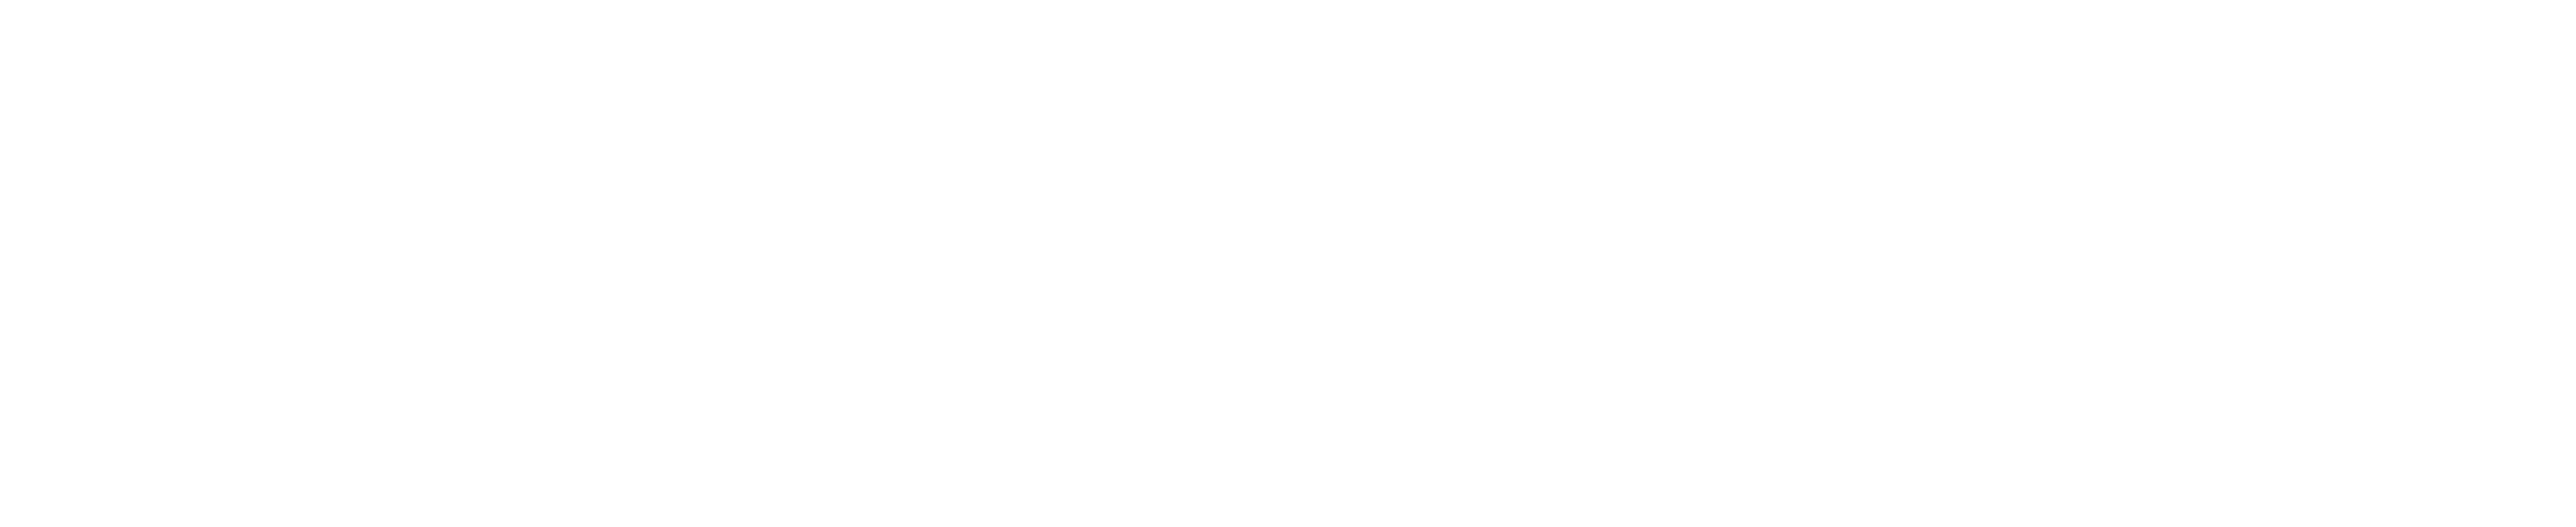 UNC School of Dentistry logo